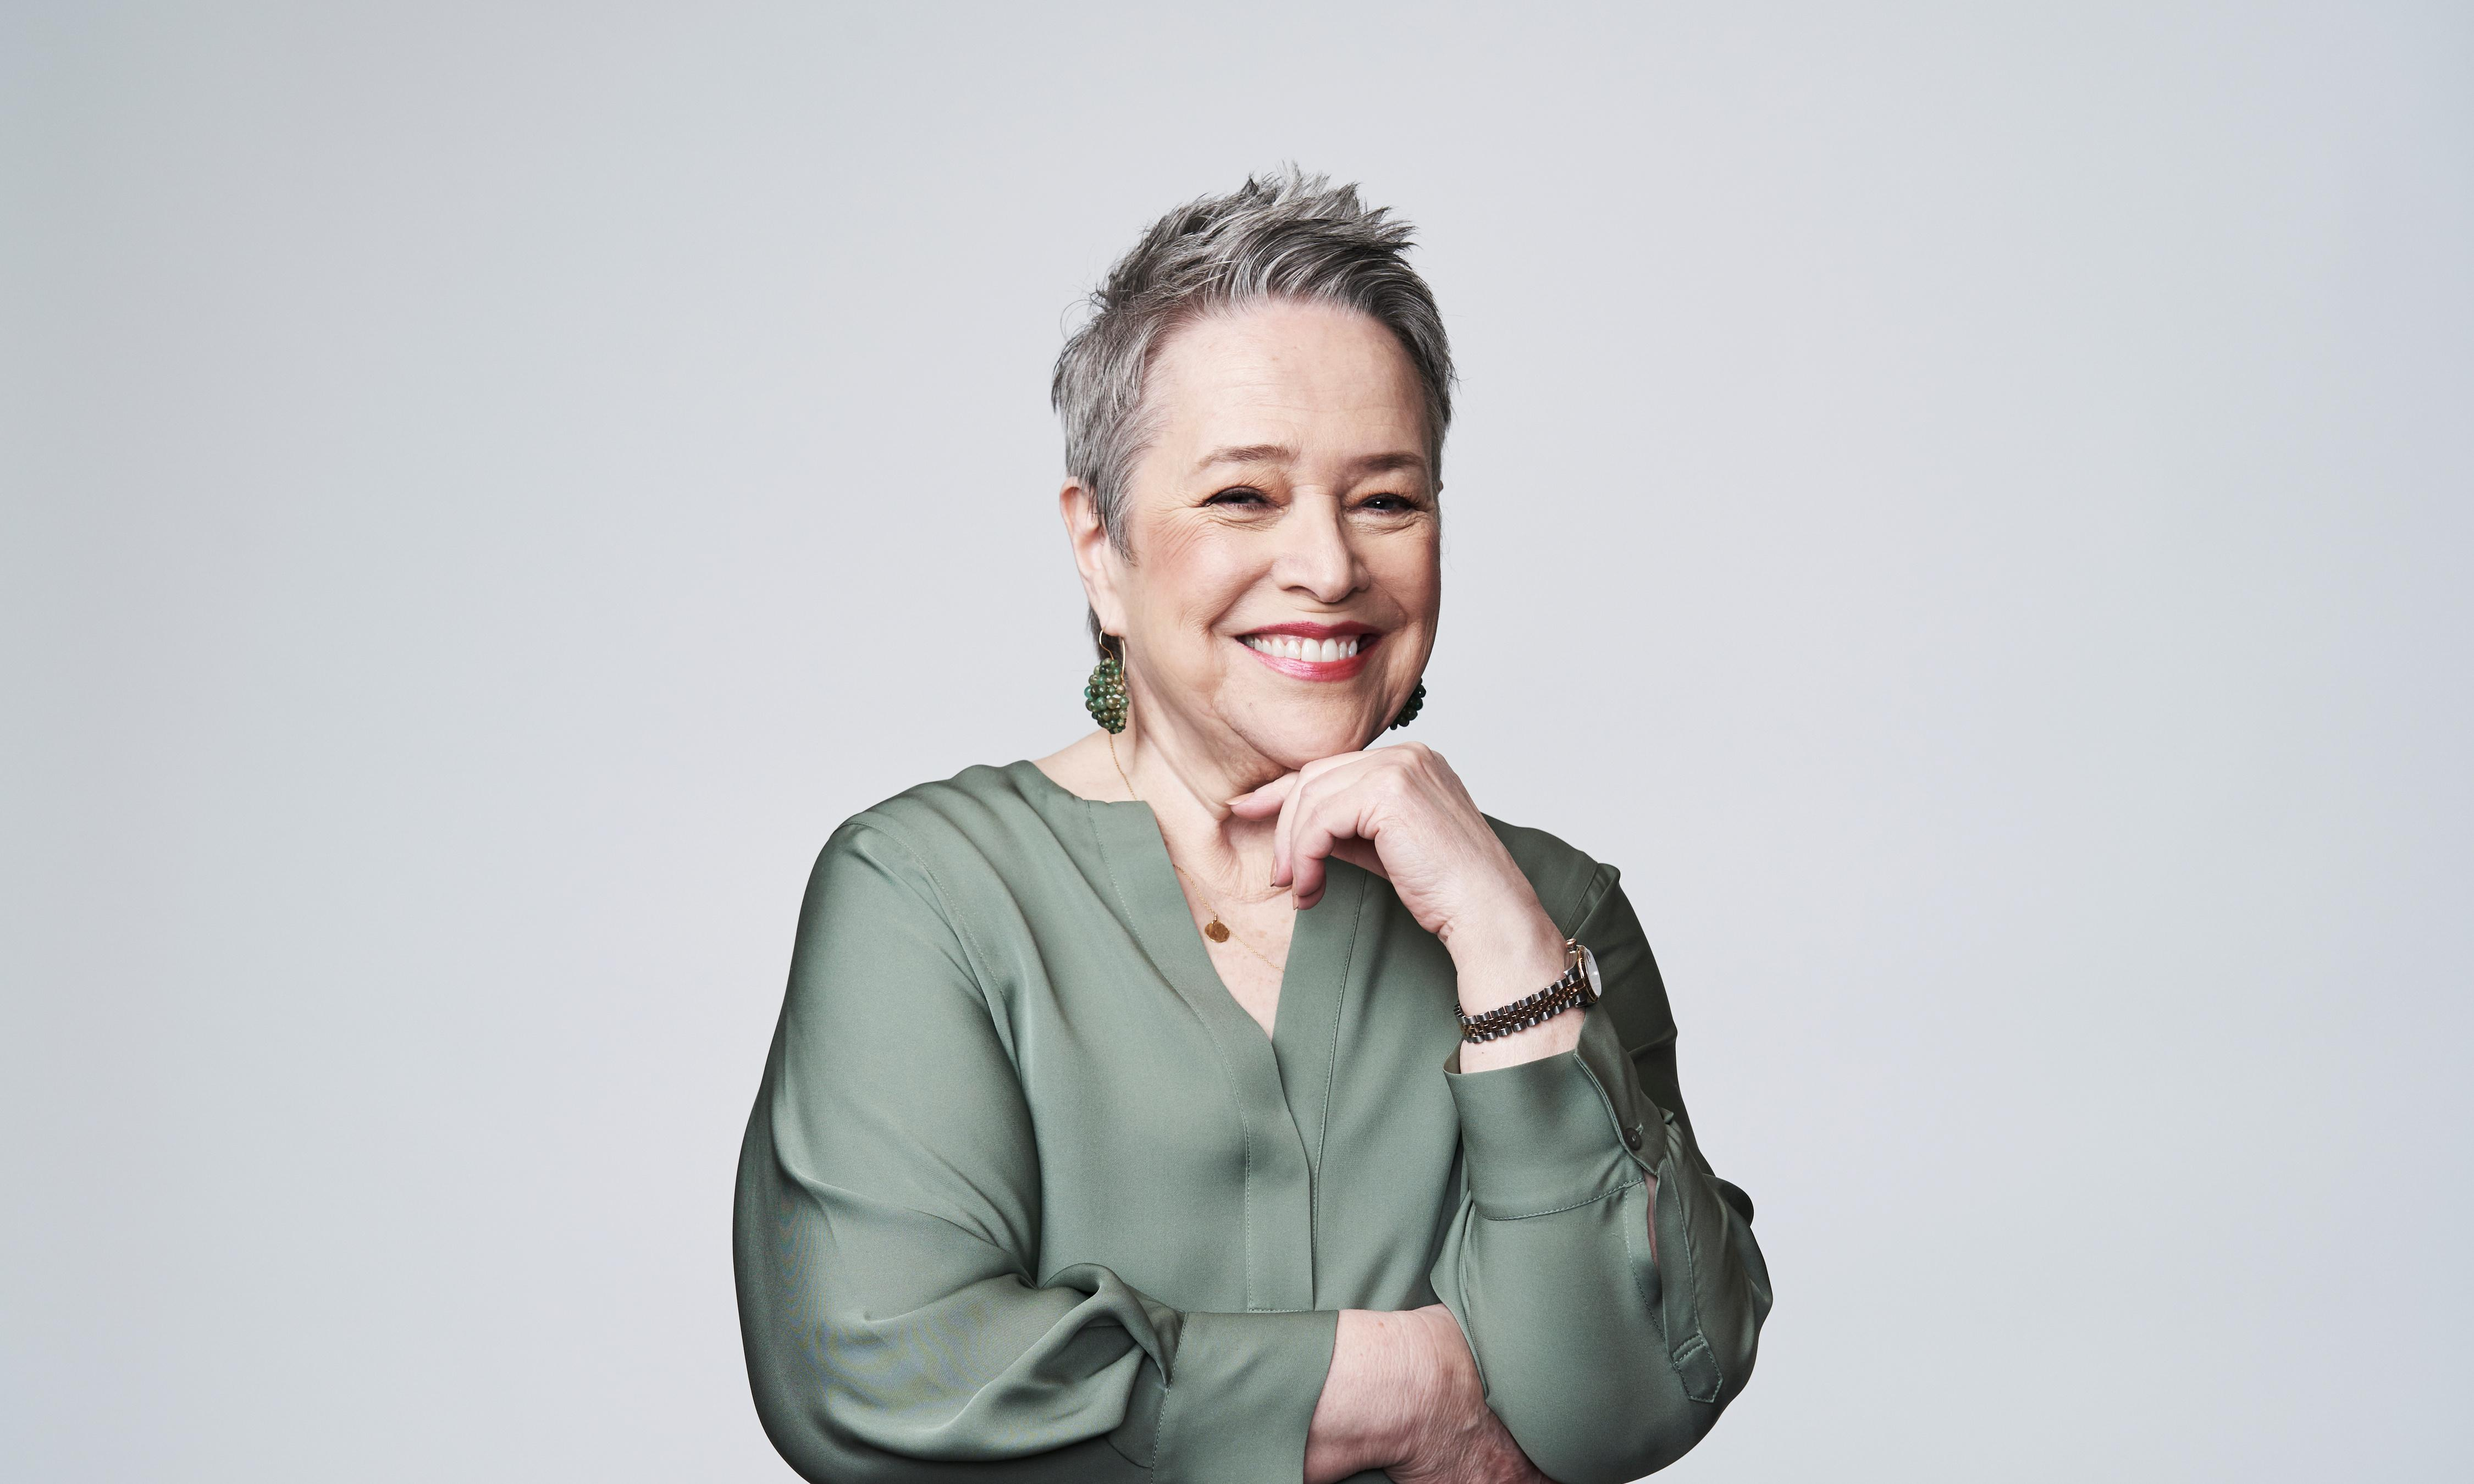 Kathy Bates: 'I told Clint that after 50 years, I feel like I've hit the big time'